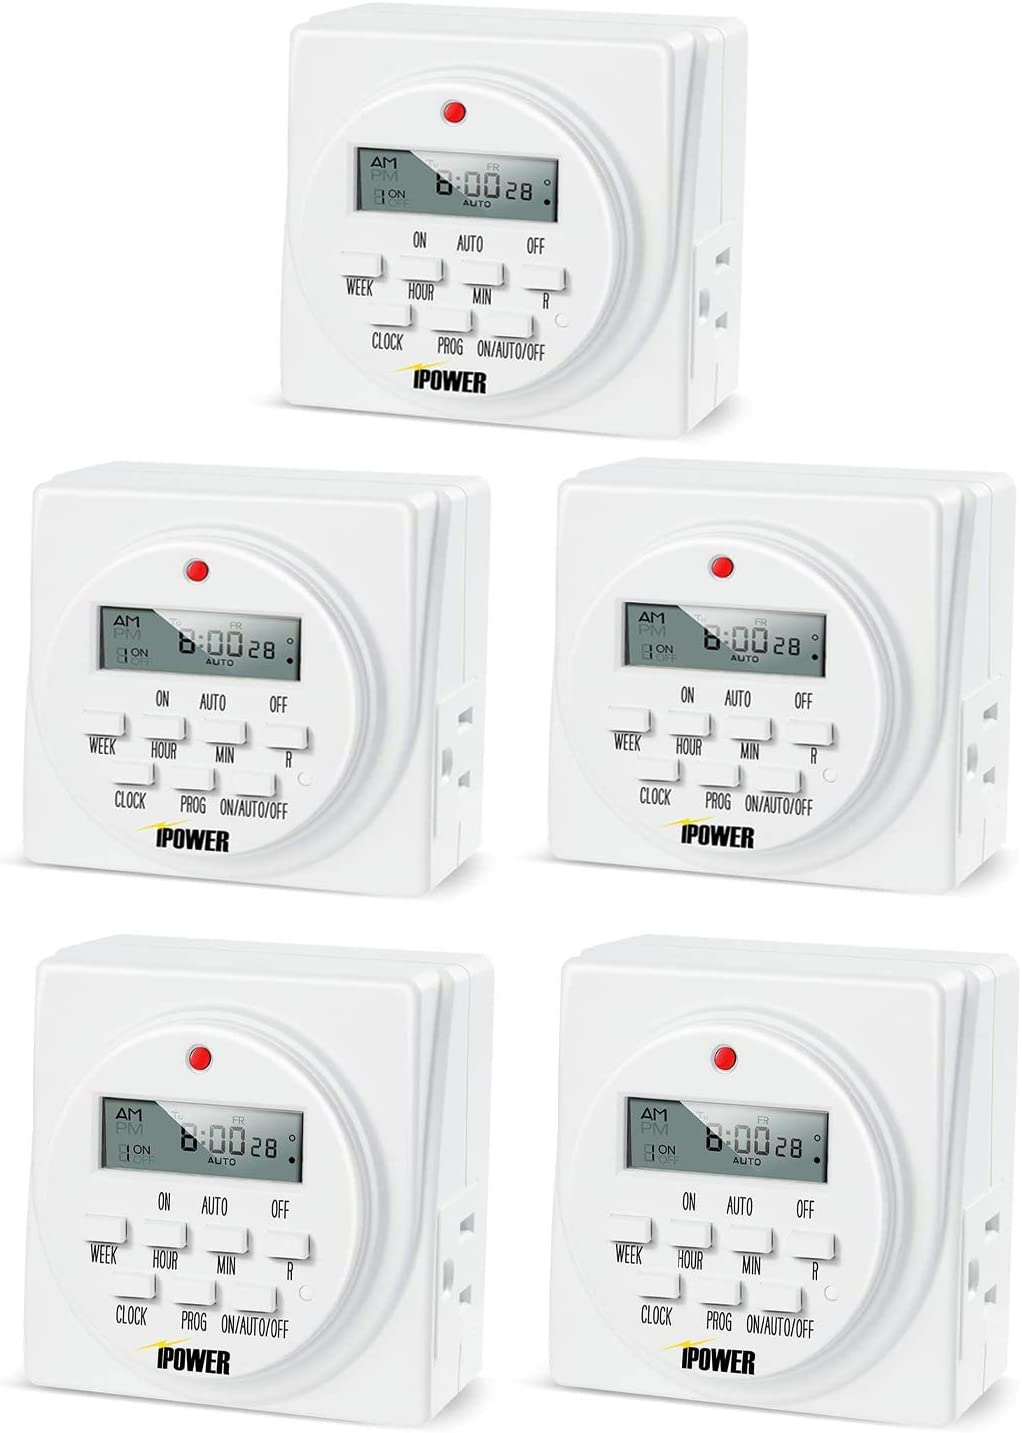 iPower GLTIMEDWEEKX5 5-Pack Indefinitely 7 Max 52% OFF Digital Electric Day Programmable